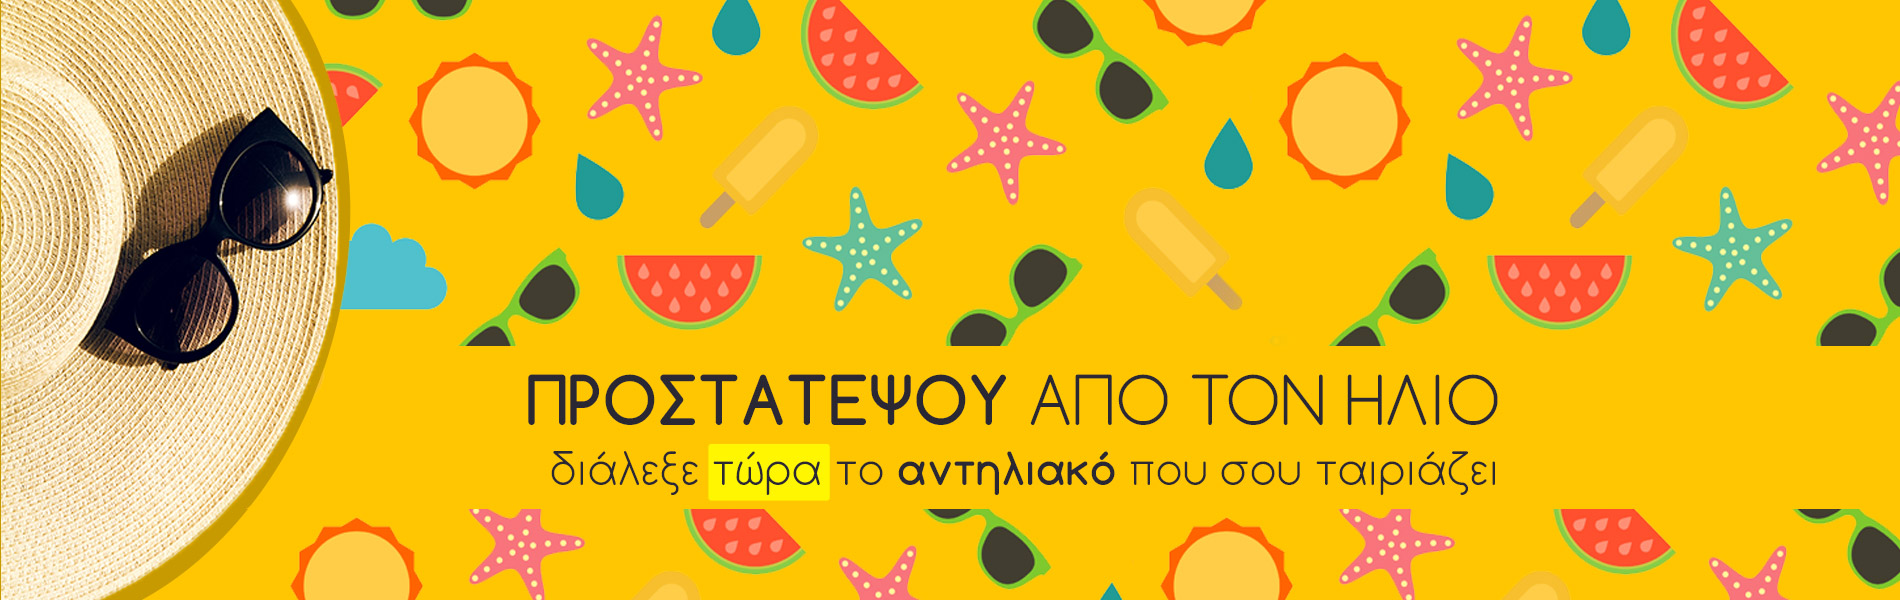 trustpharmacy_antiliaka_2019_big_banner